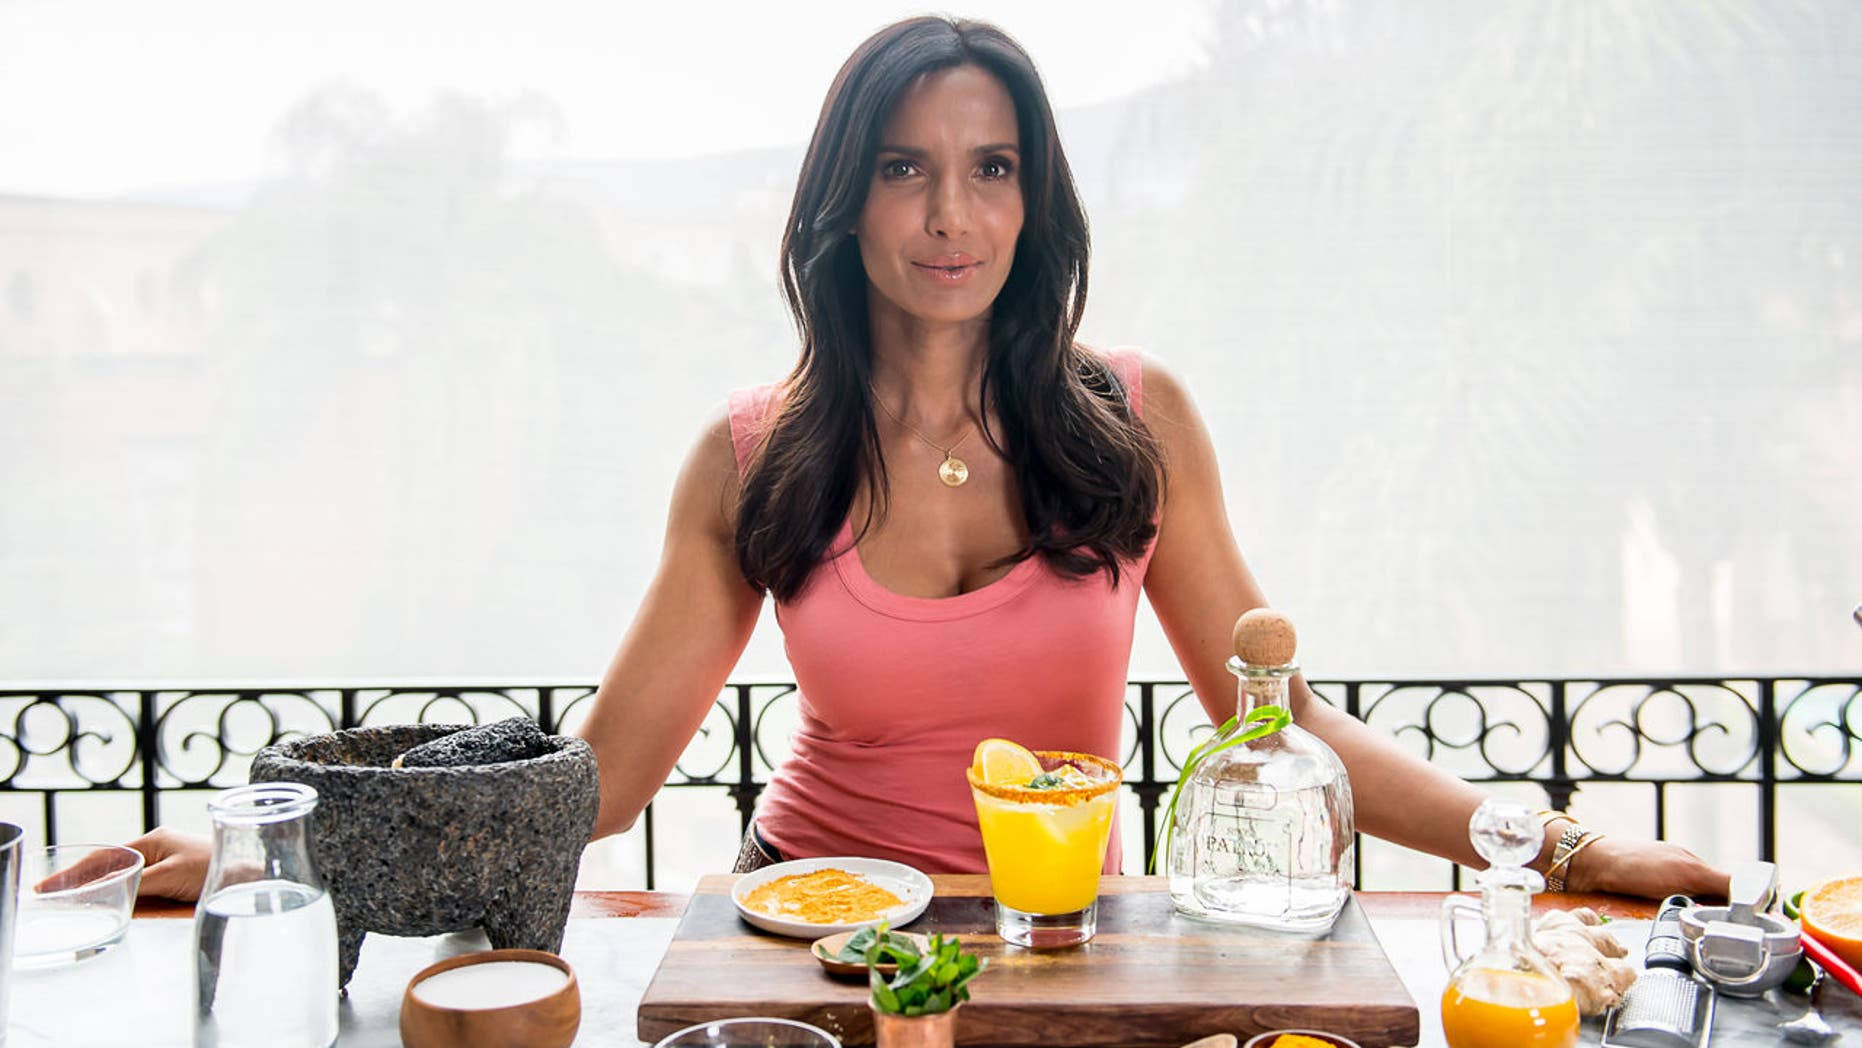 'Top Chef's' Padma Lakshmi shakes up a plain margarita with spicy ginger and fragrant turmeric.